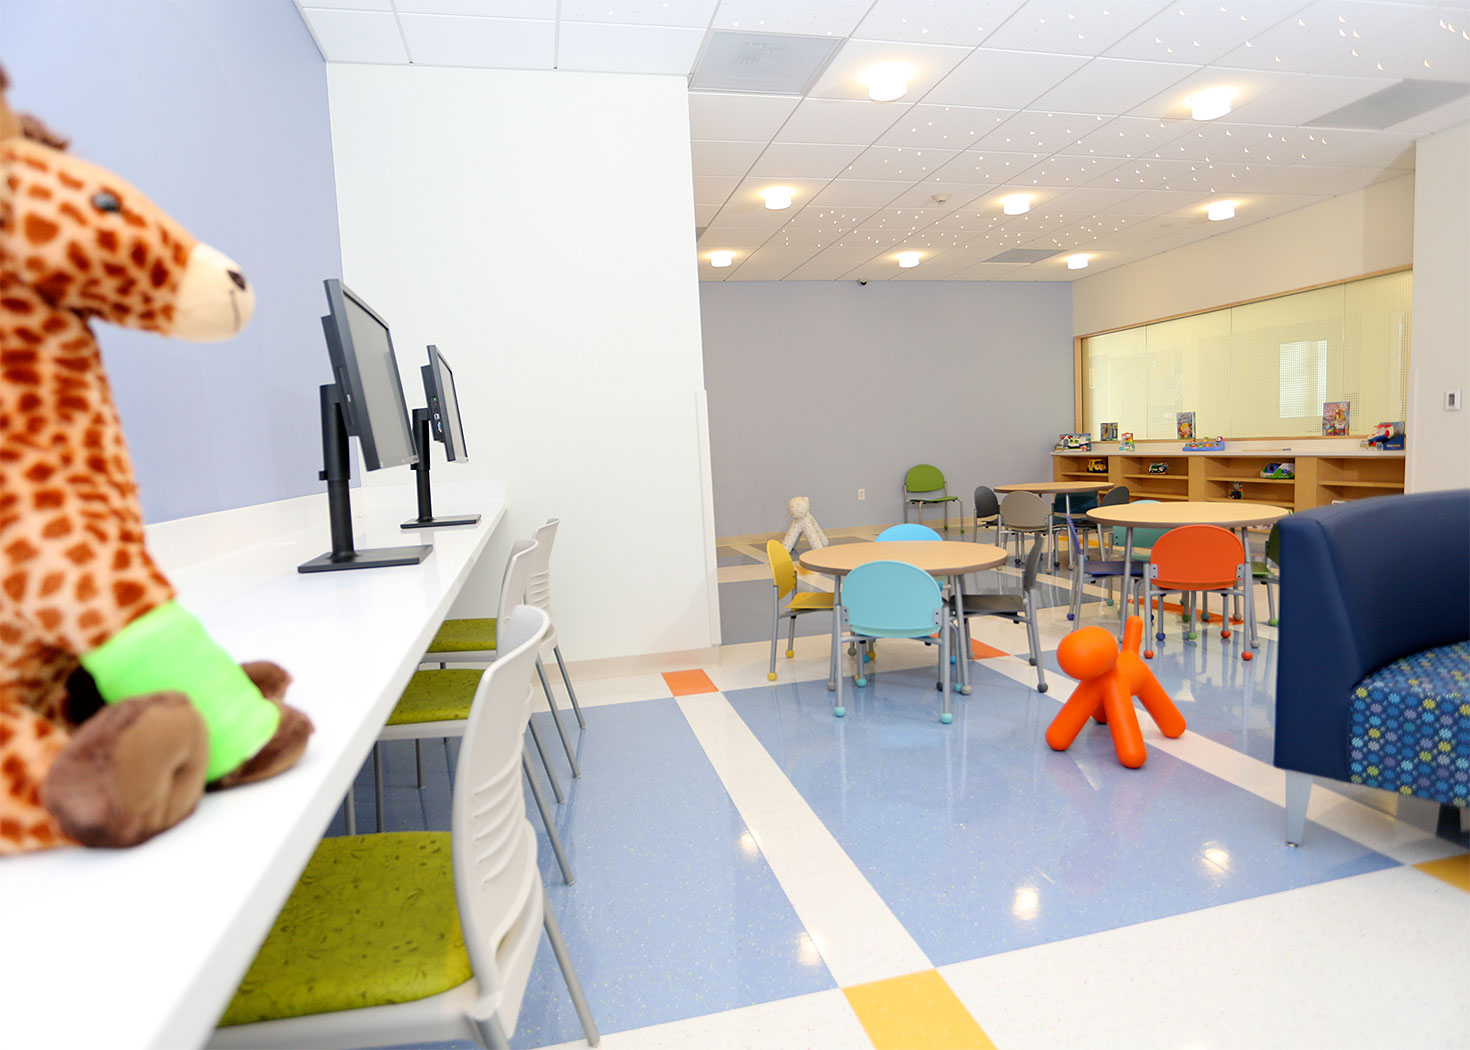 Move Marks The Opening Of New Childrens Hospital In Buffalo